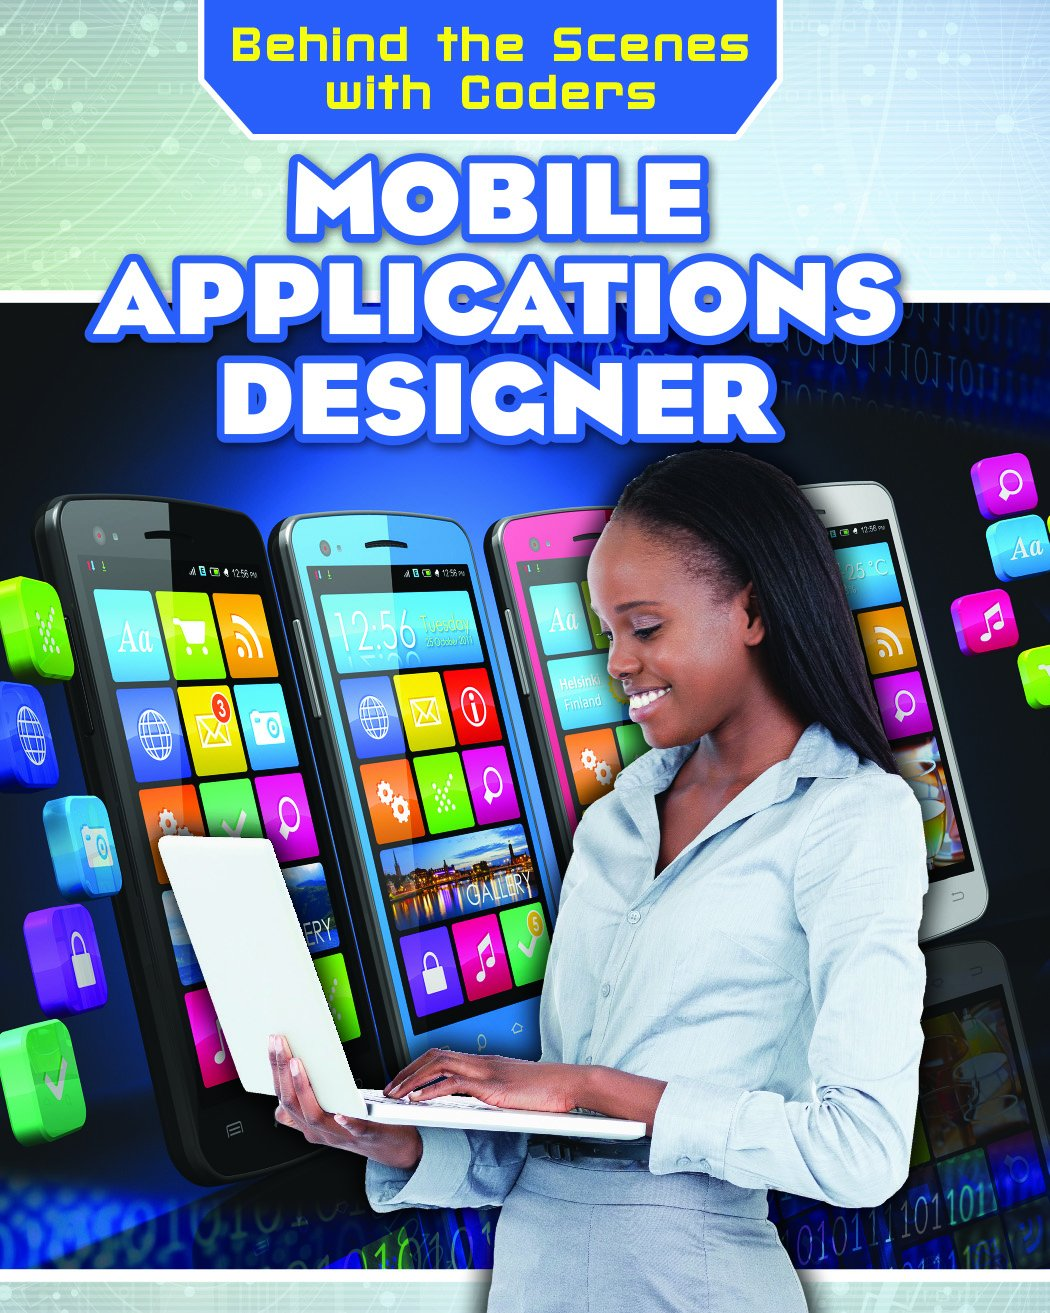 Mobile Applications Designer (Behind the Scenes With Coders)